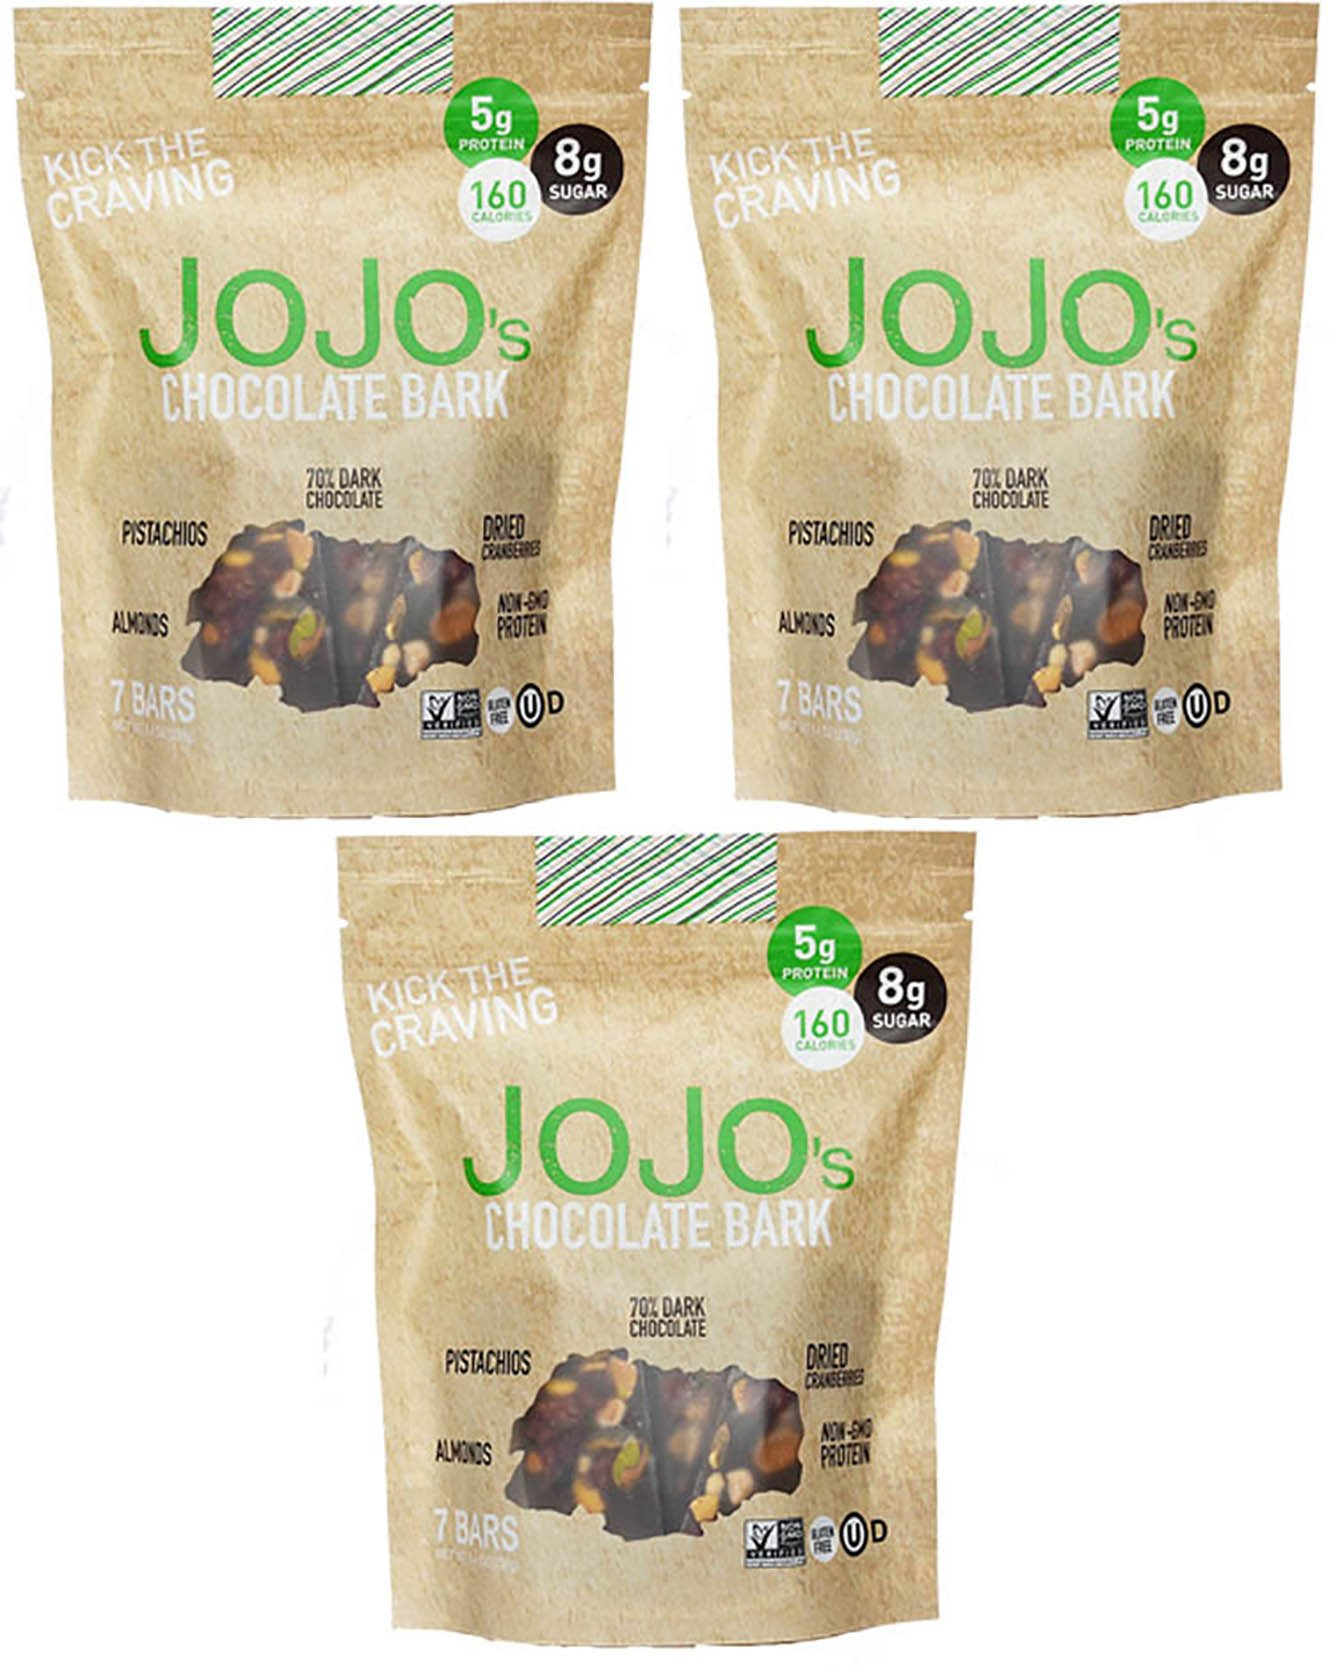 JOJO's- Dark Chocolate Bark With All Natural Protein Raw Nuts and Fruit, NON-GMO, Gluten Free, Paleo Friendly, 1.2 Ounce Bars, 21 Count(Three Week Supply- 25 oz)